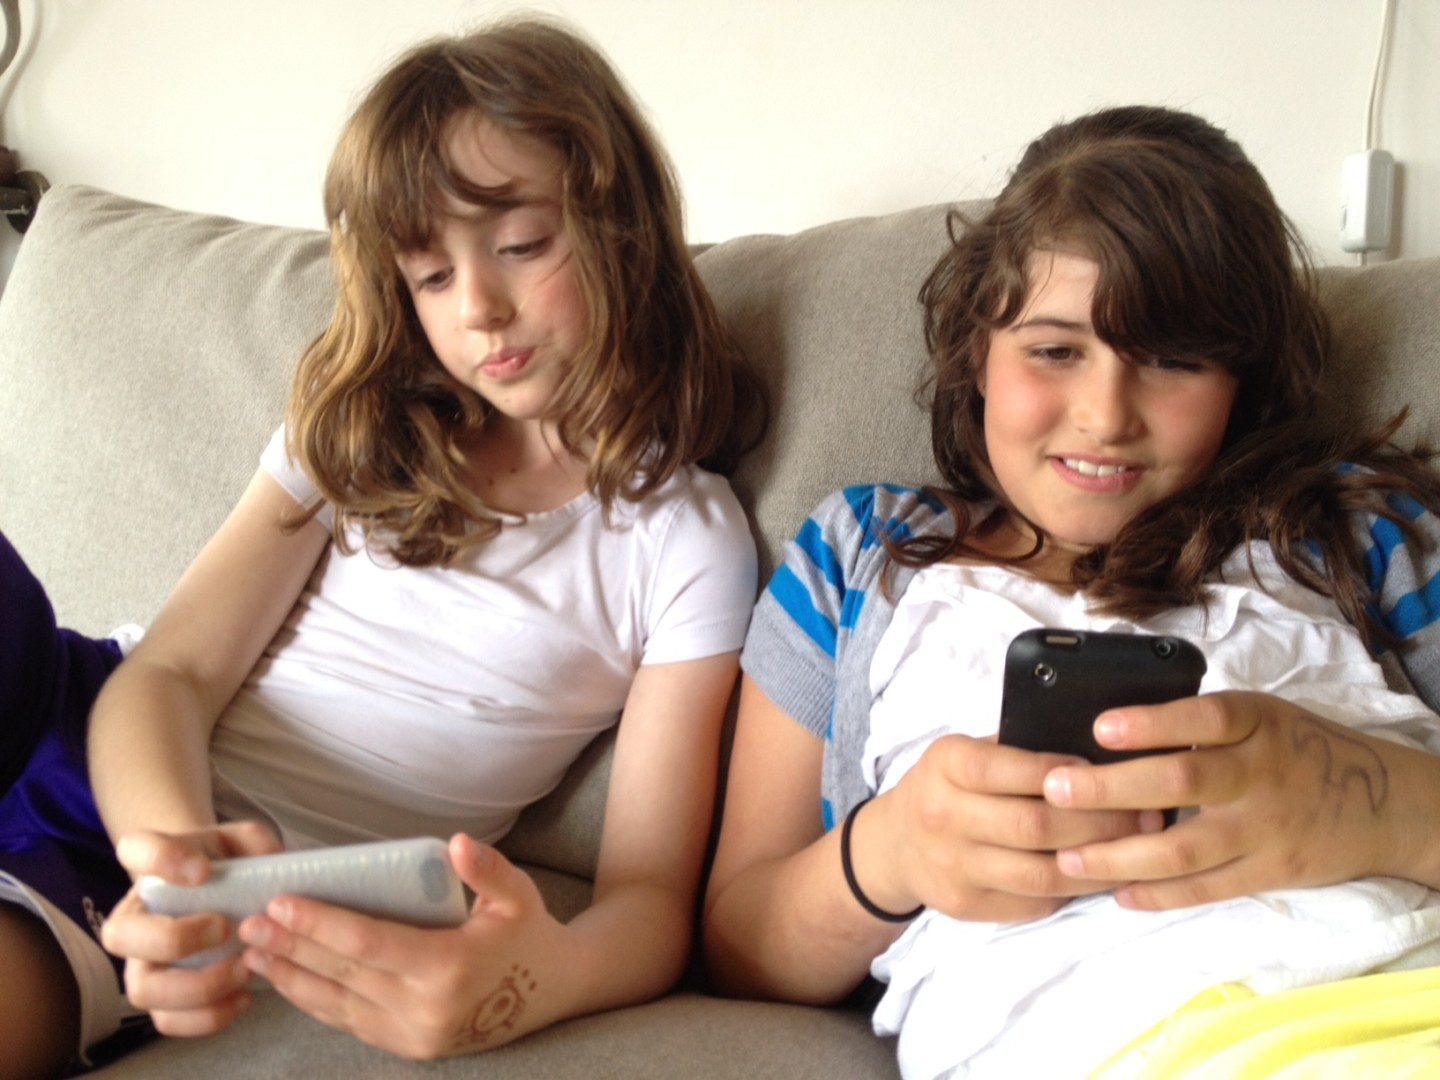 Apps Aimed at Kids Raise Privacy Concerns